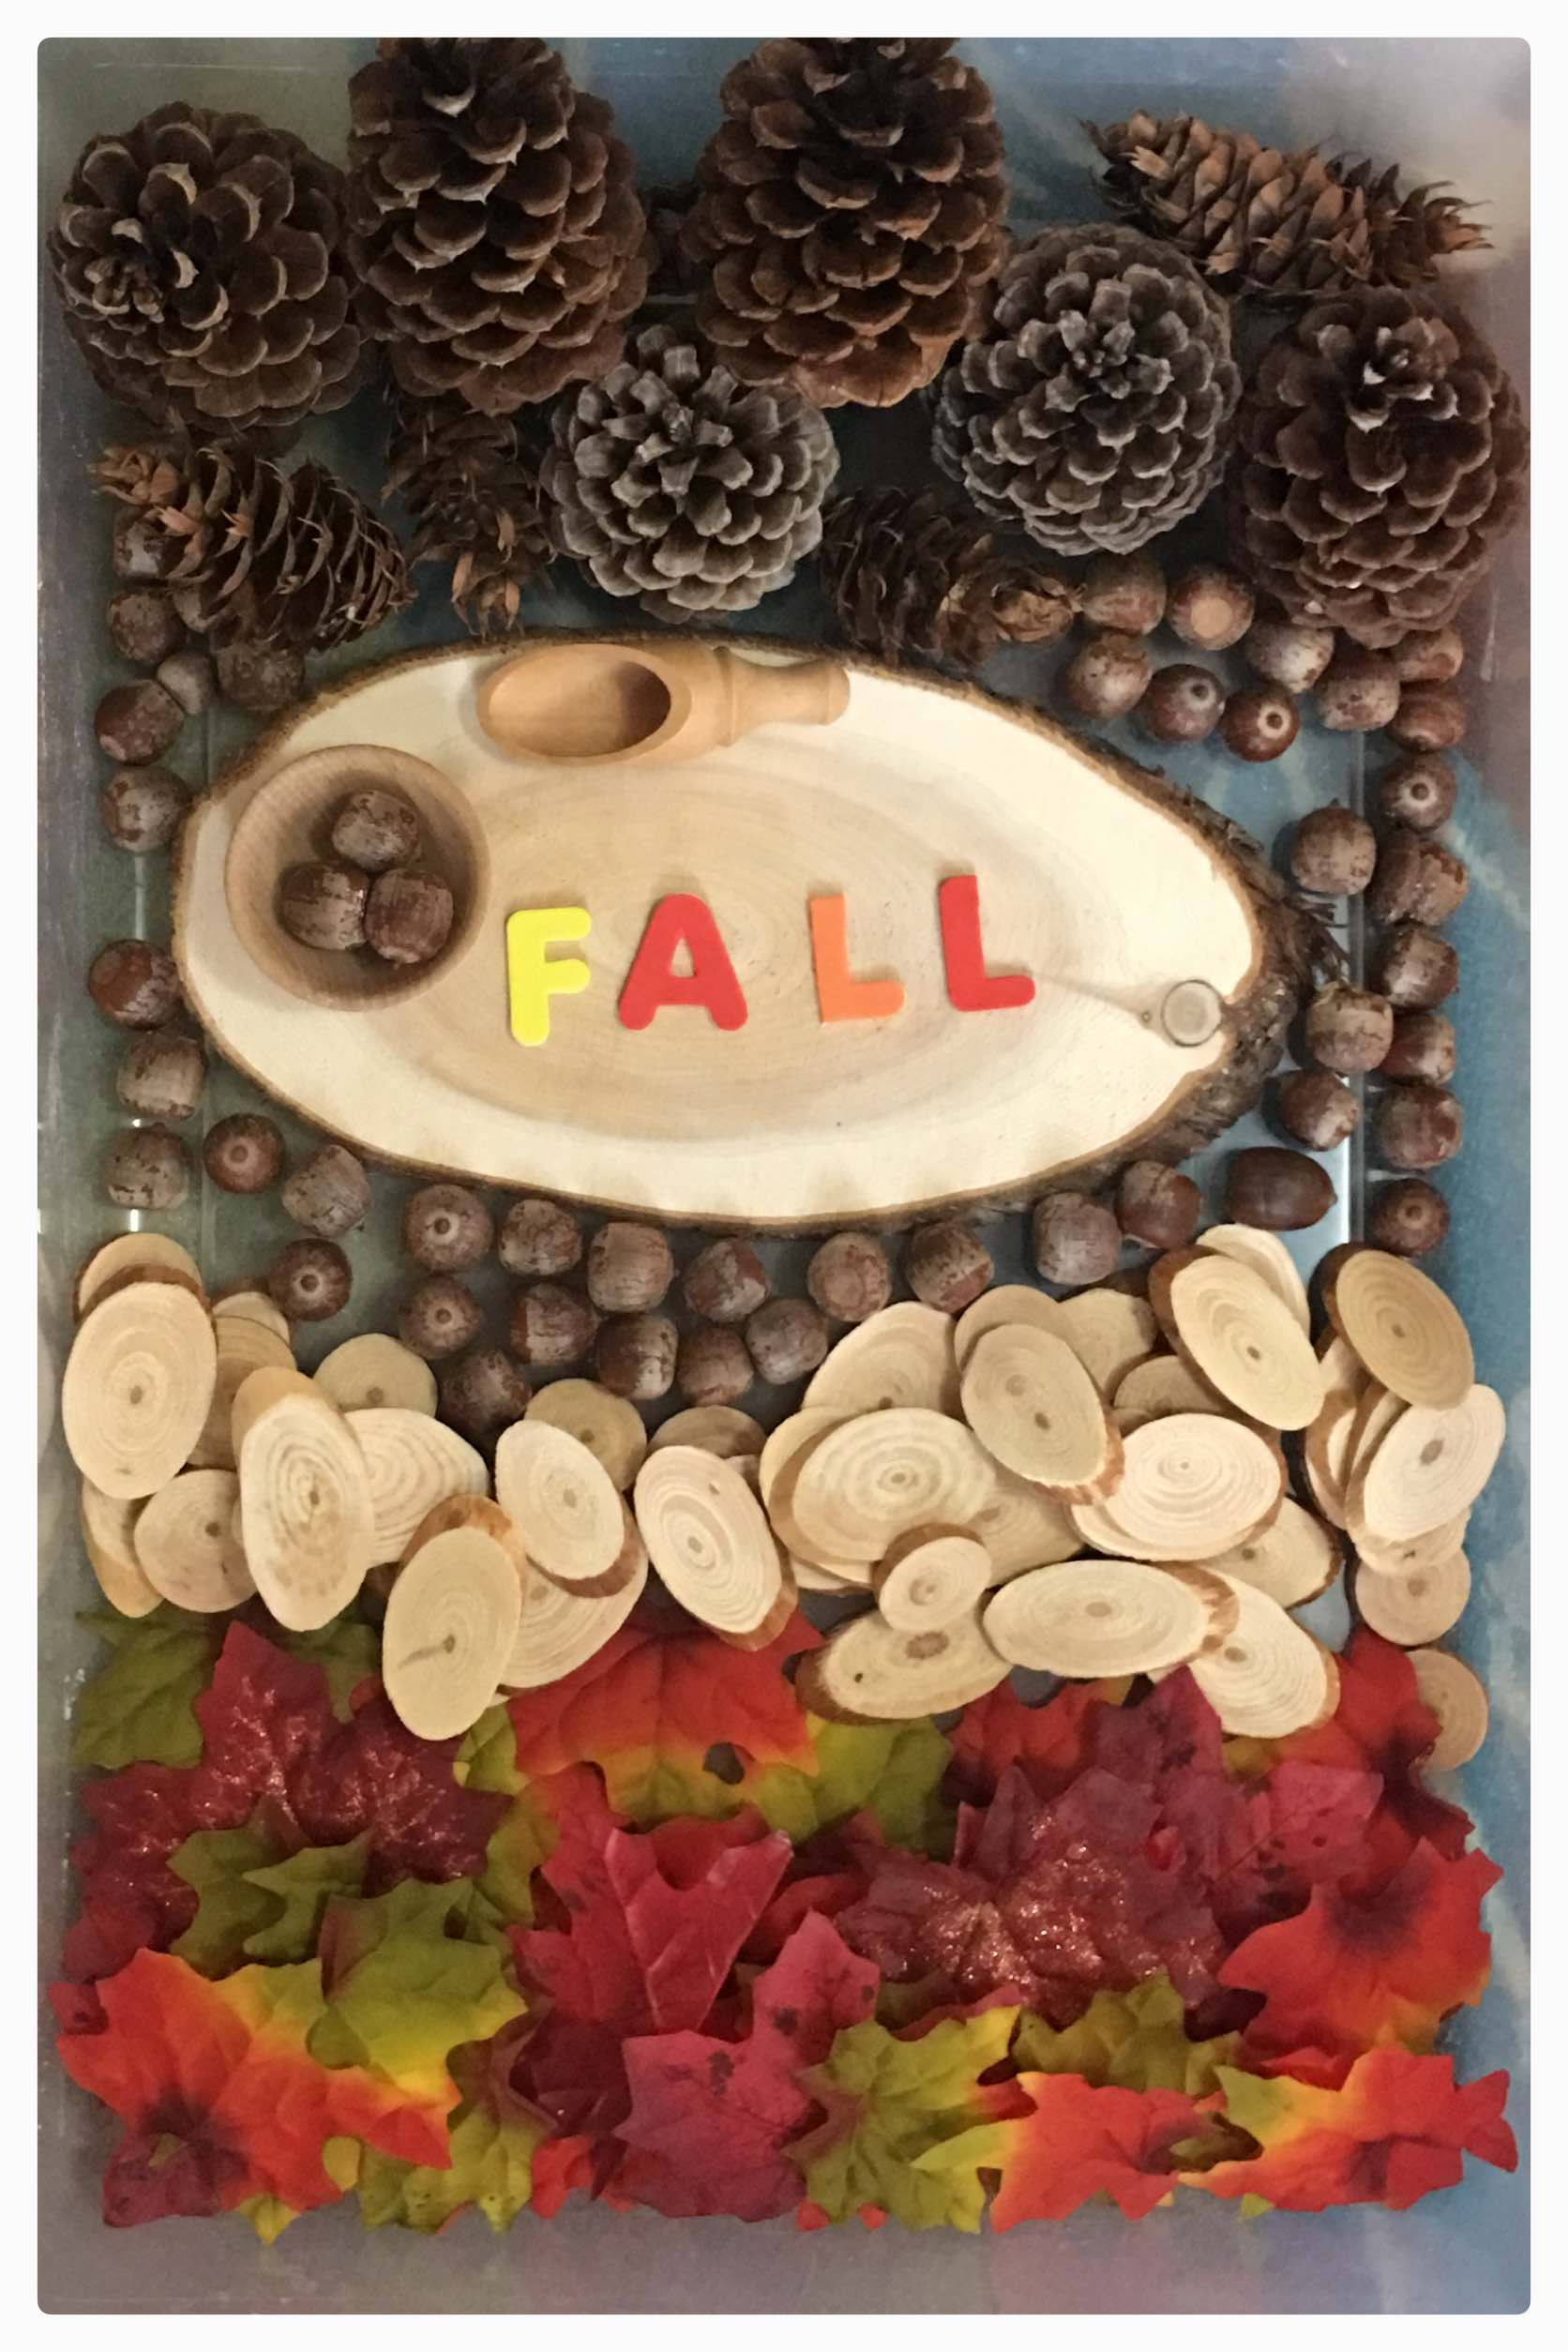 Creating simple sensory bins to celebrate the fall season. This contains silk leaves so can be used over and over again.